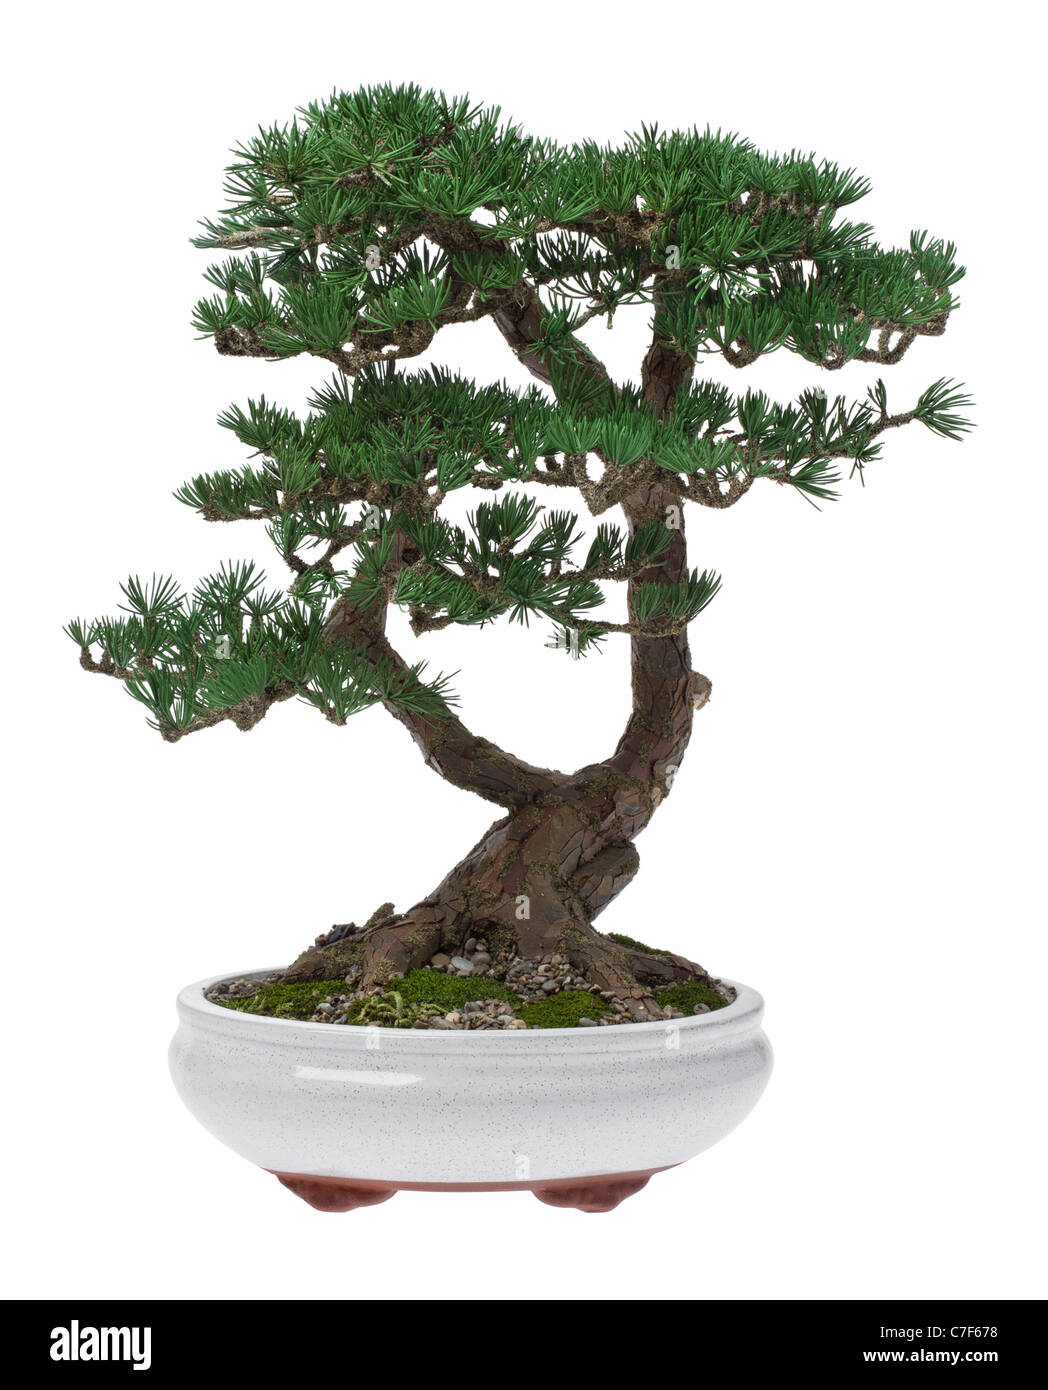 A small bonsai tree in a ceramic pot isolated on a white background a small bonsai tree in a ceramic pot isolated on a white background stock photo 39057516 alamy mightylinksfo